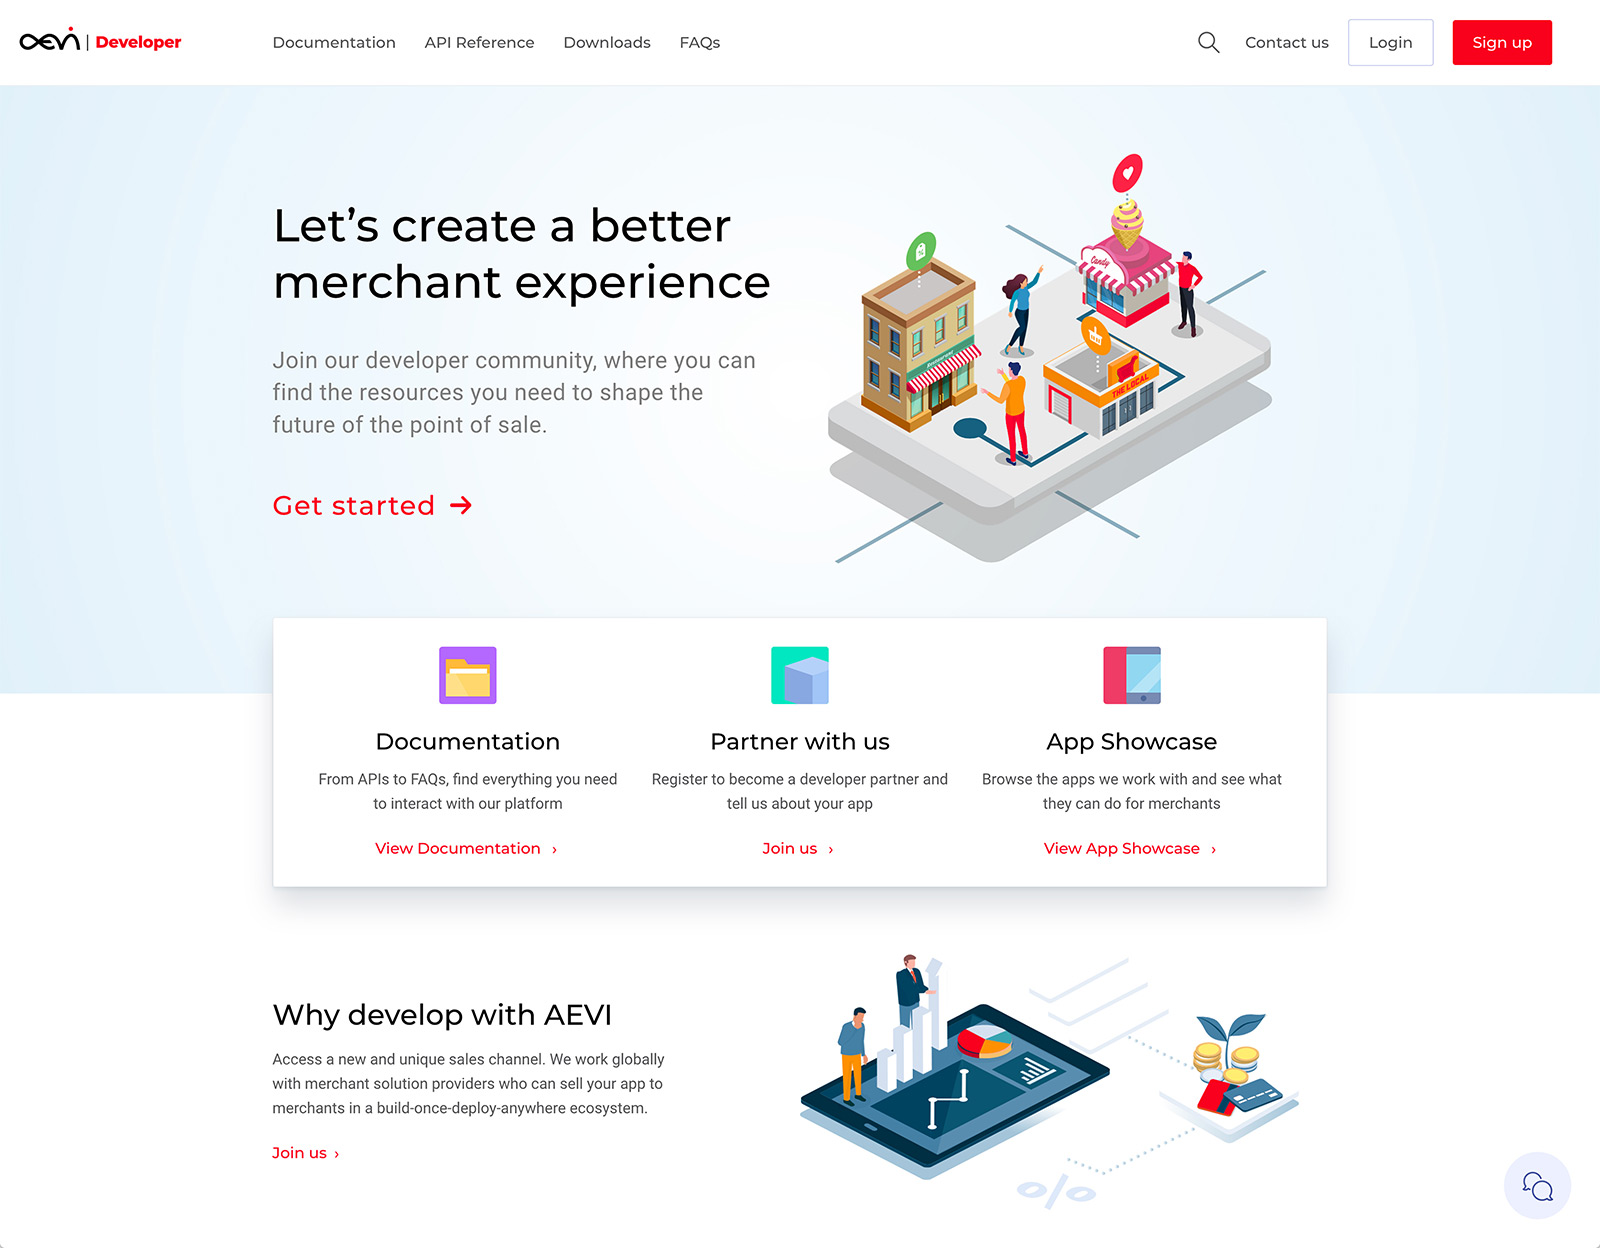 AEVI Developer Portal